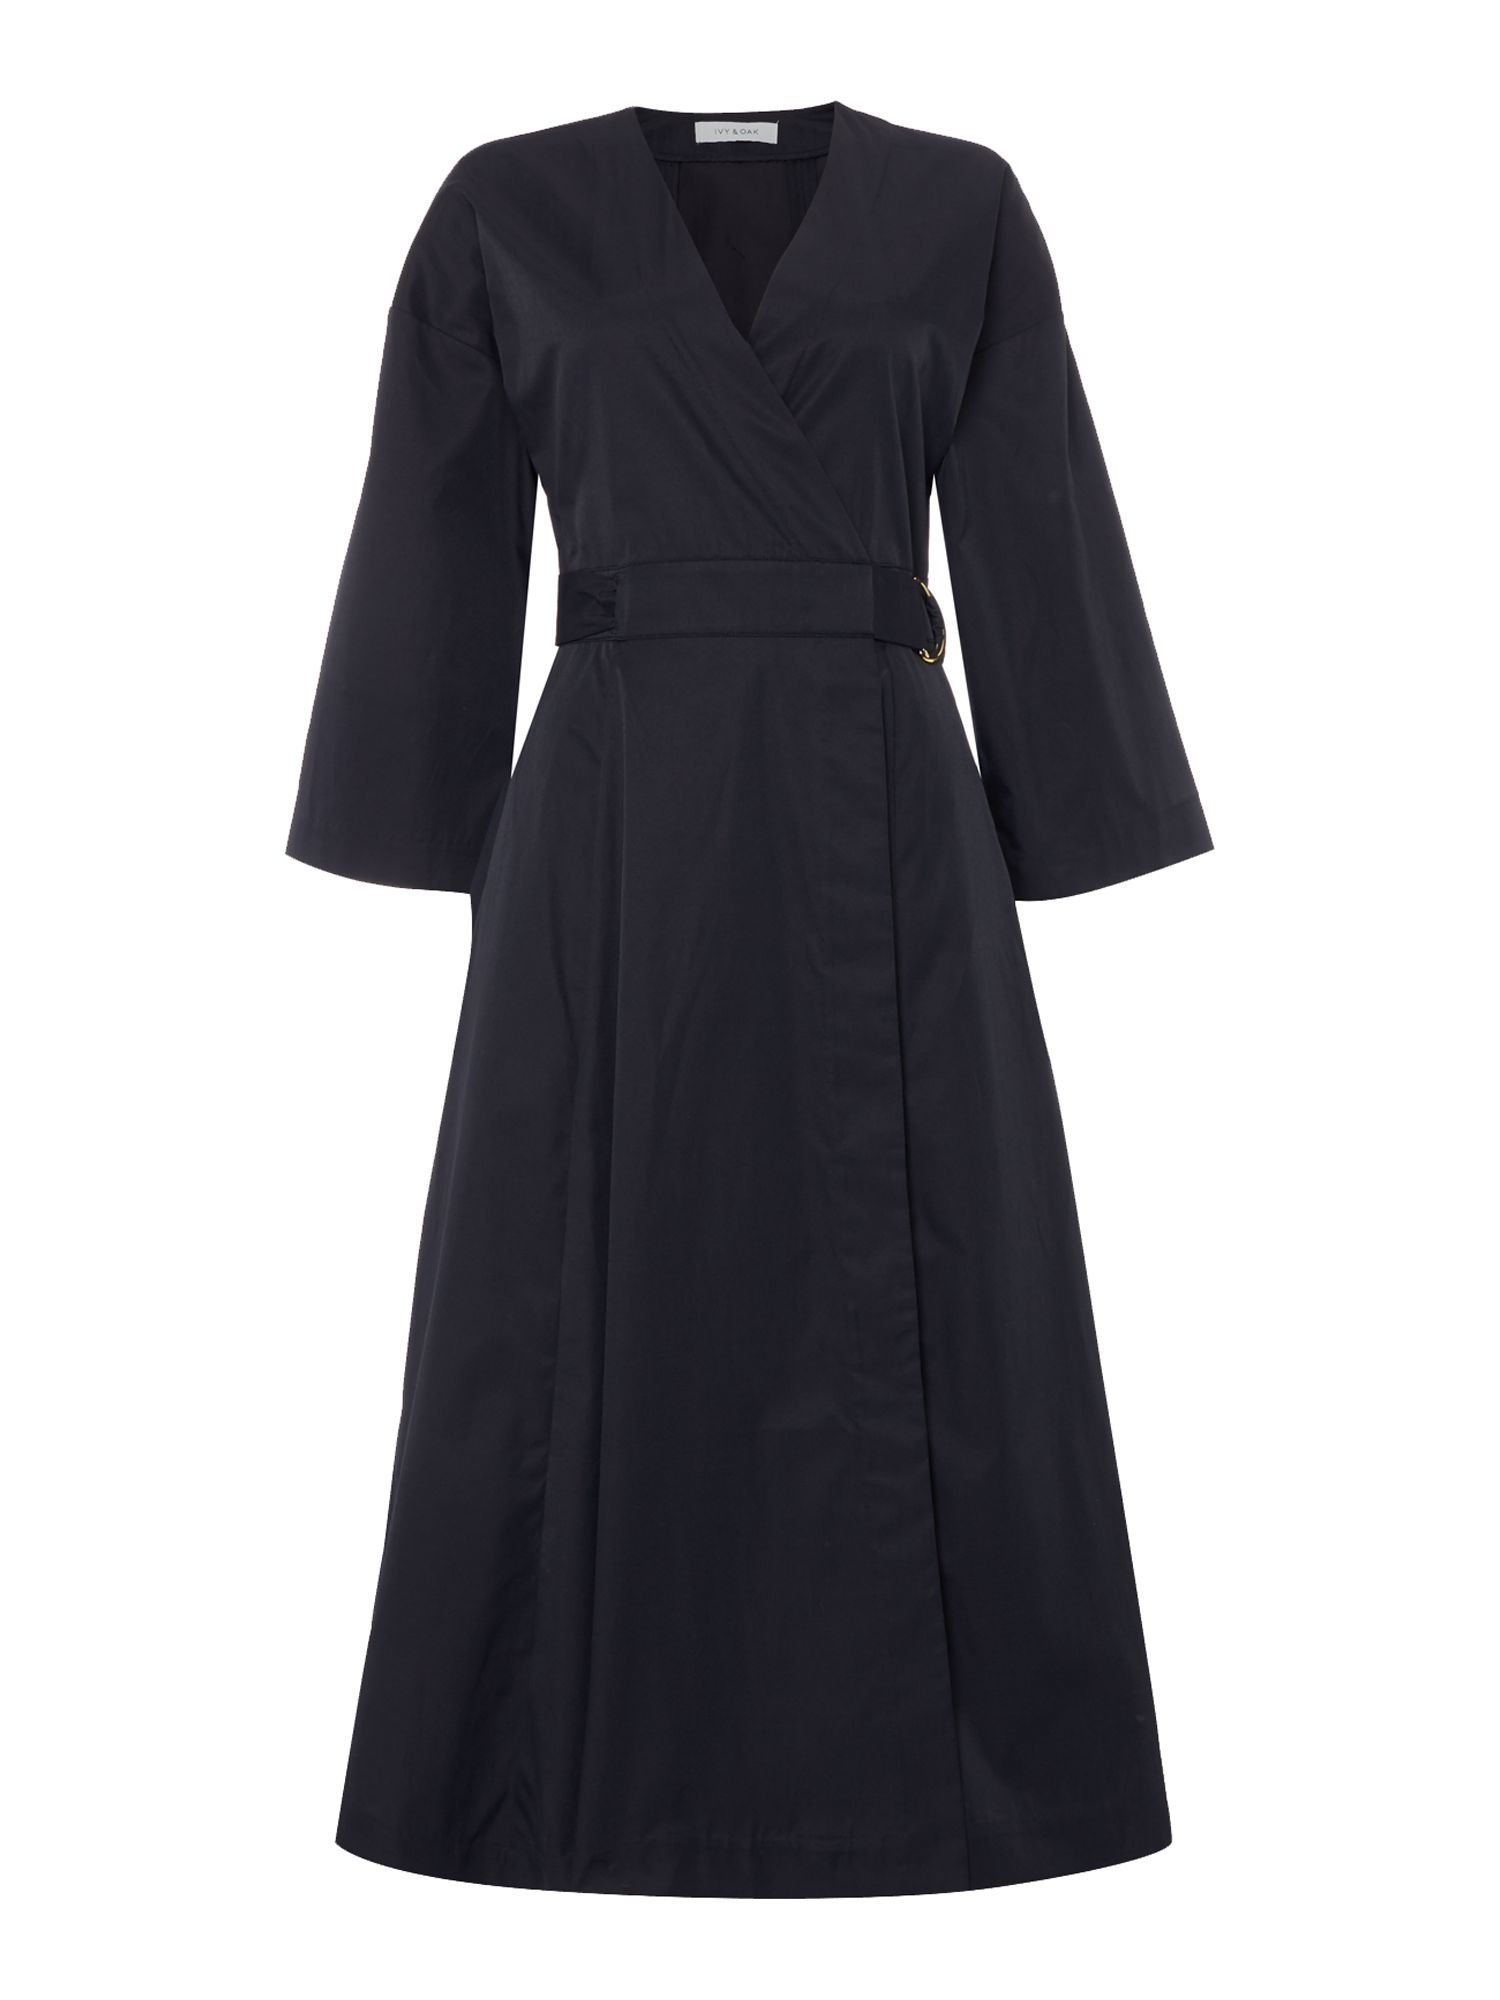 Ivy & Oak Pleat skirt dress with 3/4 sleeve and wrap top, Midnight Blue